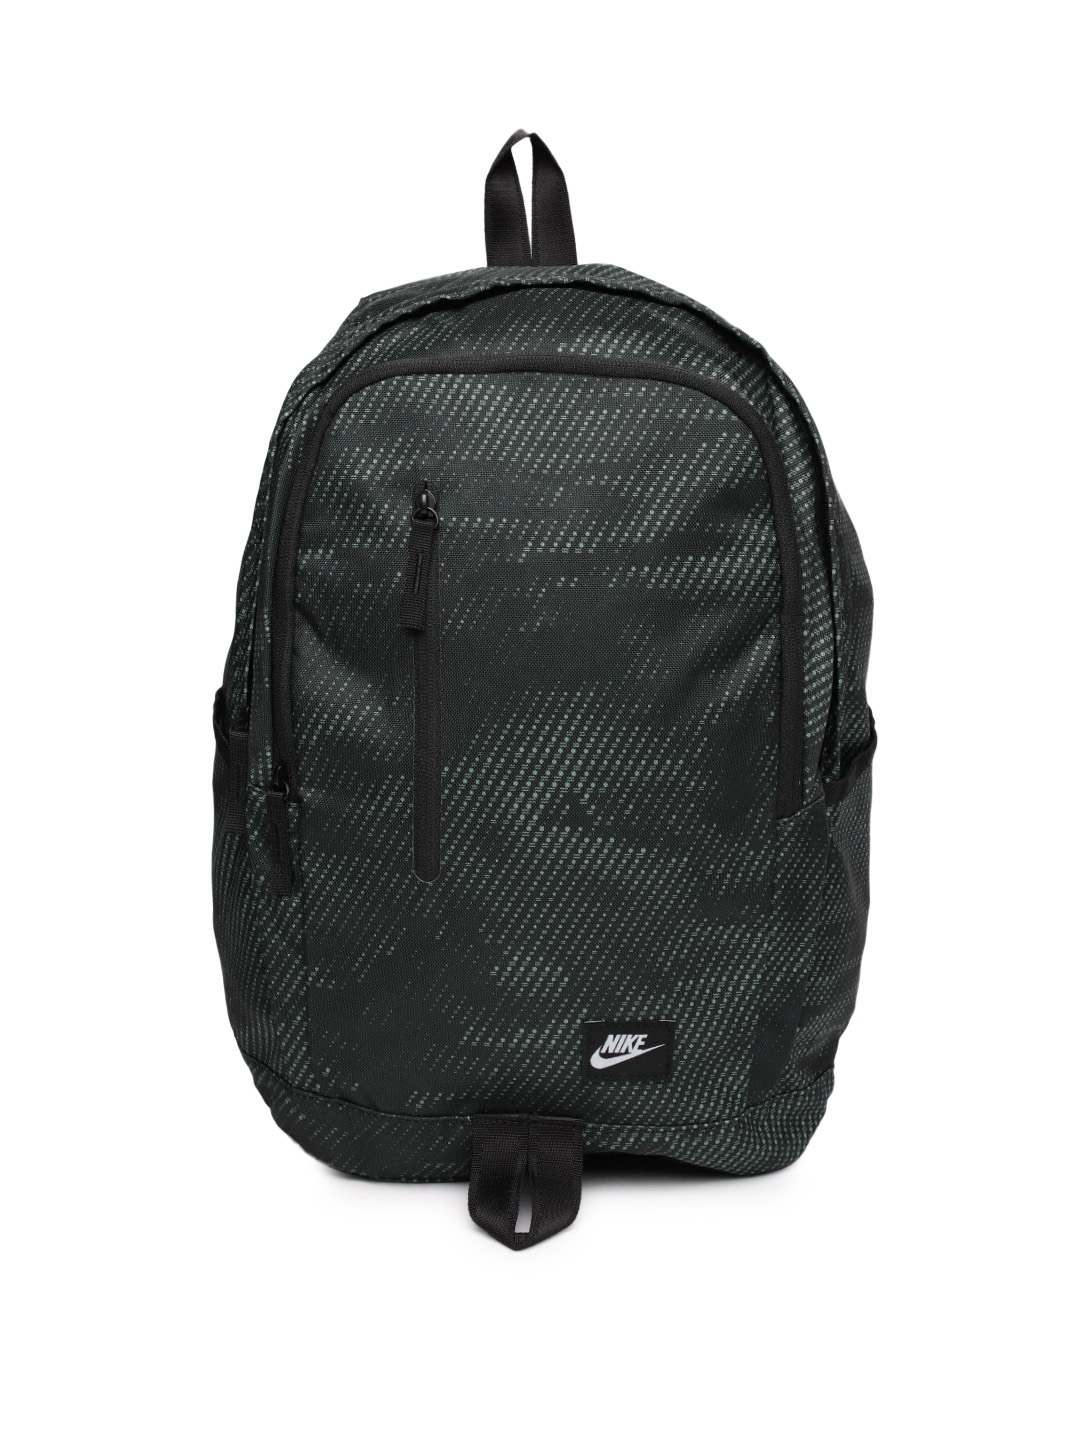 8207471a6e7c Buy Nike Unisex Black All Access Soleday Graphic Backpack ...